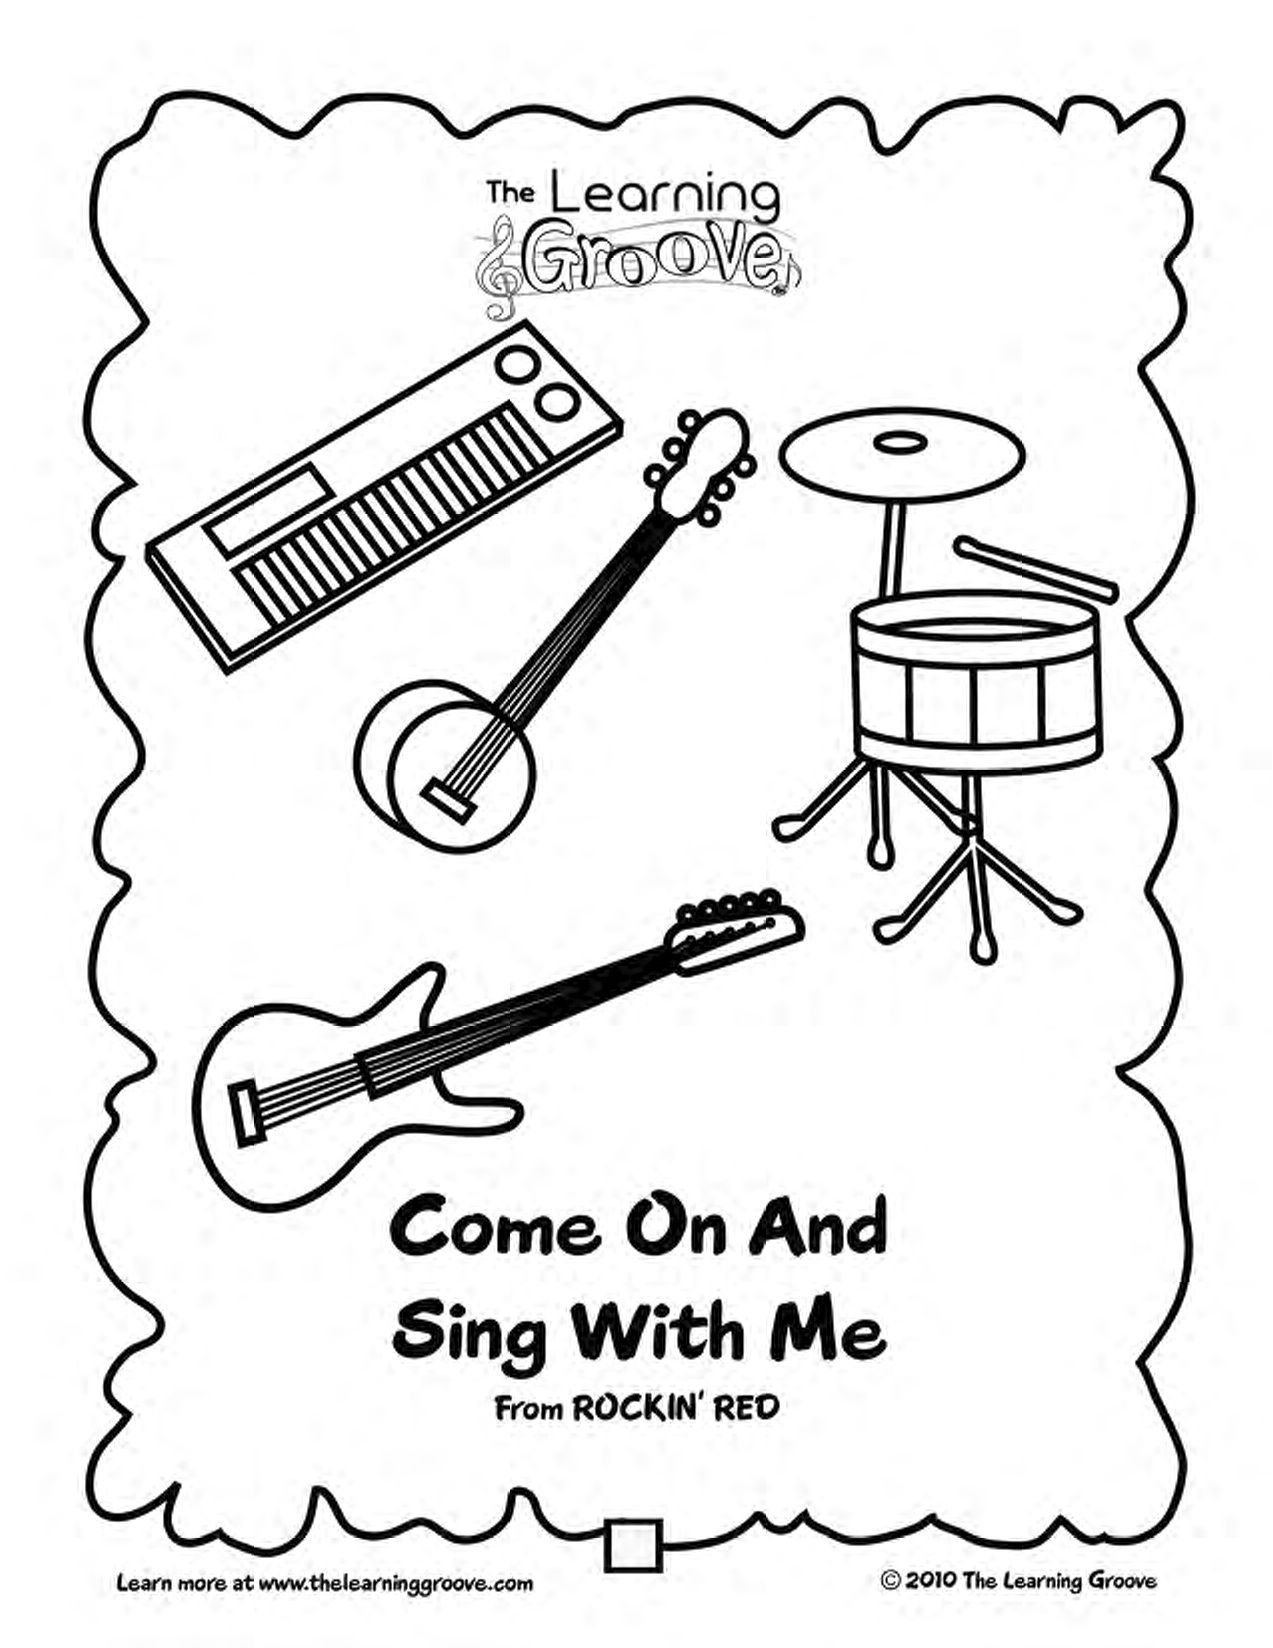 Come On And Sing With Me - This would be a great song to teach preschoolers about some different instruments!